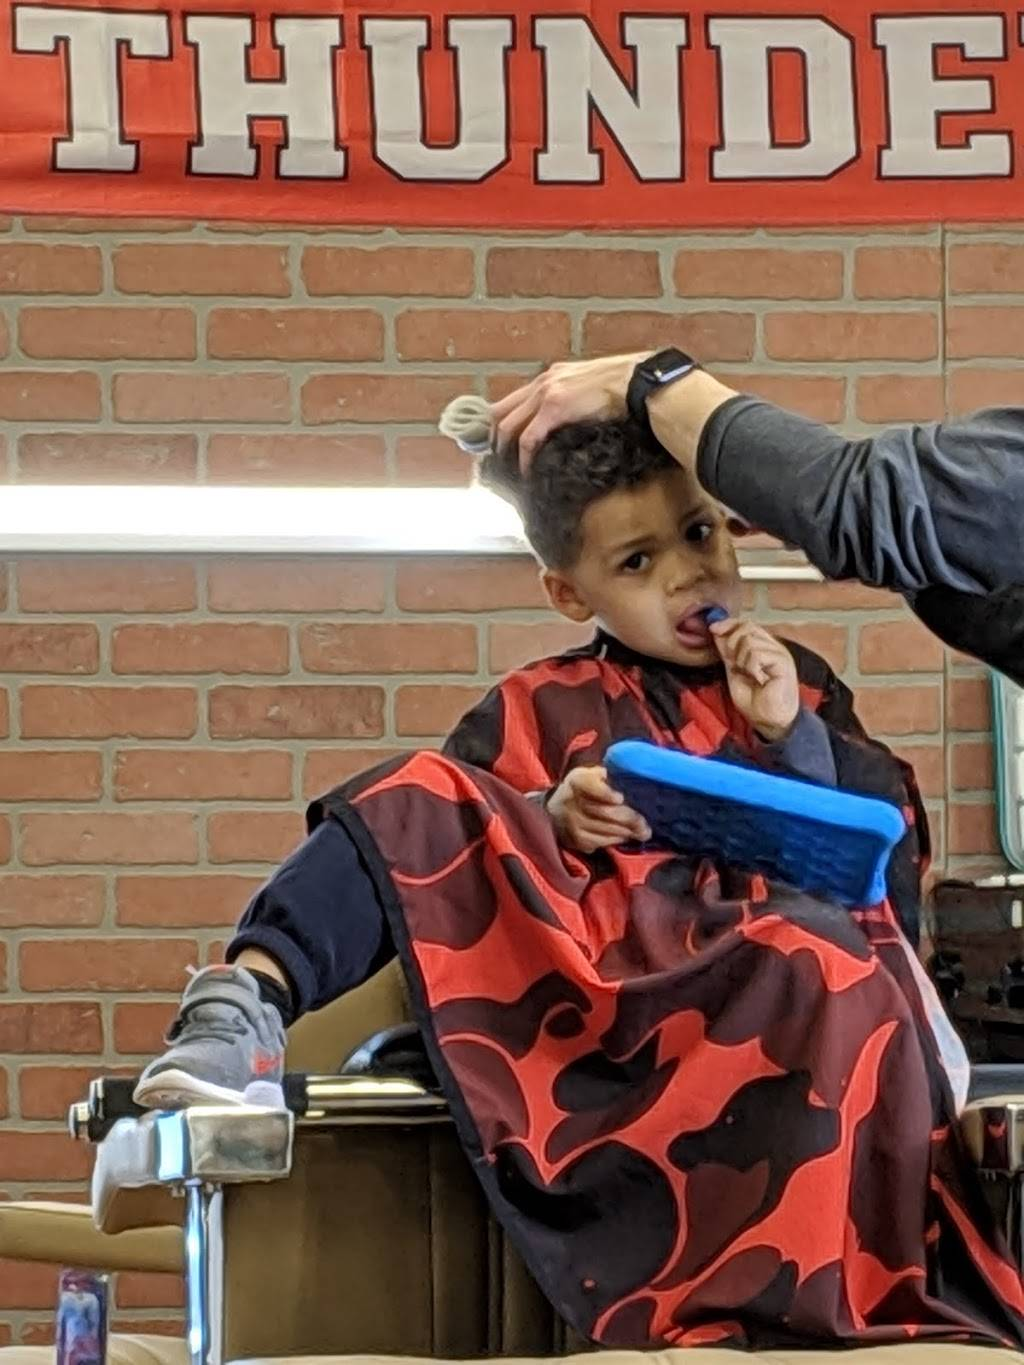 Supreme Barbering LLC - hair care  | Photo 10 of 10 | Address: 1705 N Broadway Ave, Oklahoma City, OK 73103, USA | Phone: (405) 601-7087